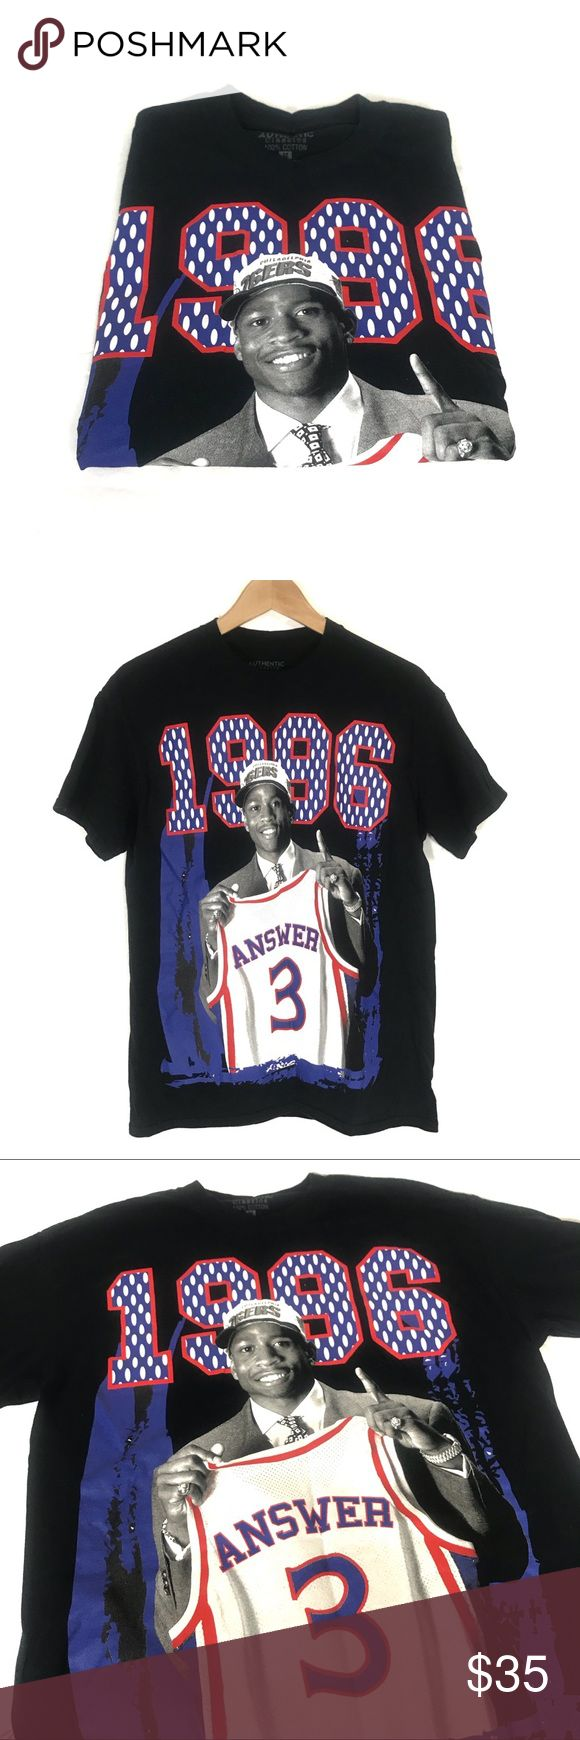 Vintage Allen Iverson Graphic Tee Vintage Allen Iverson Graphic Tee Black Tee Size Medium  Great Condition  Offers and bundles are welcomed  Thank you for shopping Authentic Original Vintage Style Shirts Tees - Short Sleeve